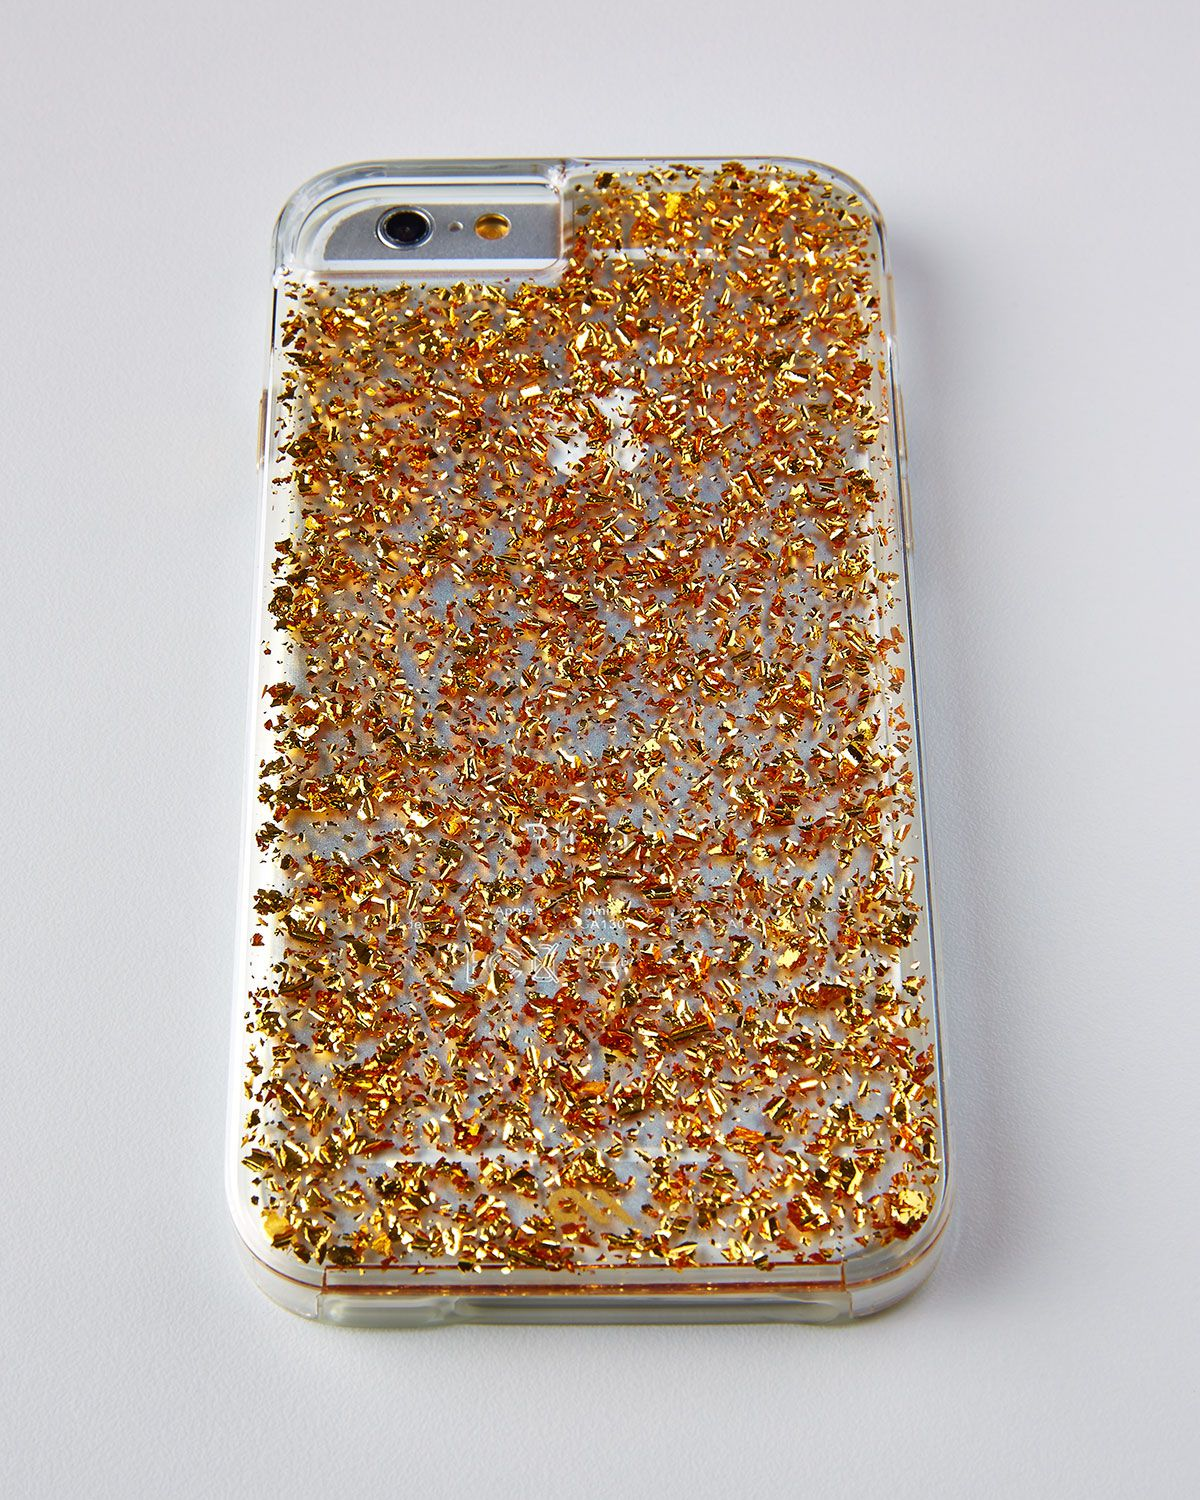 "Neiman Marcus 24K Gold iPhone Case, $50; <a href=""http://www.neimanmarcus.com/24-Kt-Gold-iPhone-6-Case/prod174680140/p.prod?eVar4=RR_OOS_PDP"" target=""_blank"">neimanmarcus.com</a>"